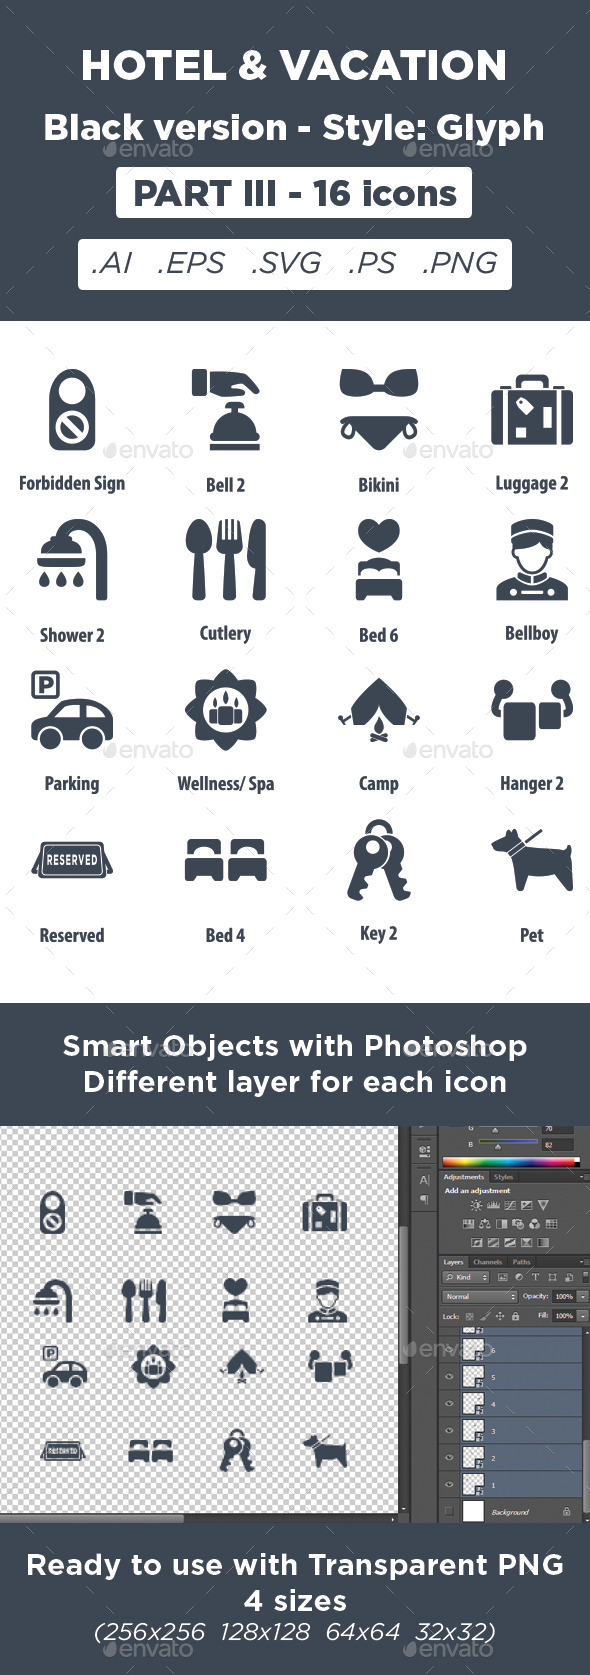 GraphicRiver Hotel & Vacation Icons Glyph style Part 3 11450692